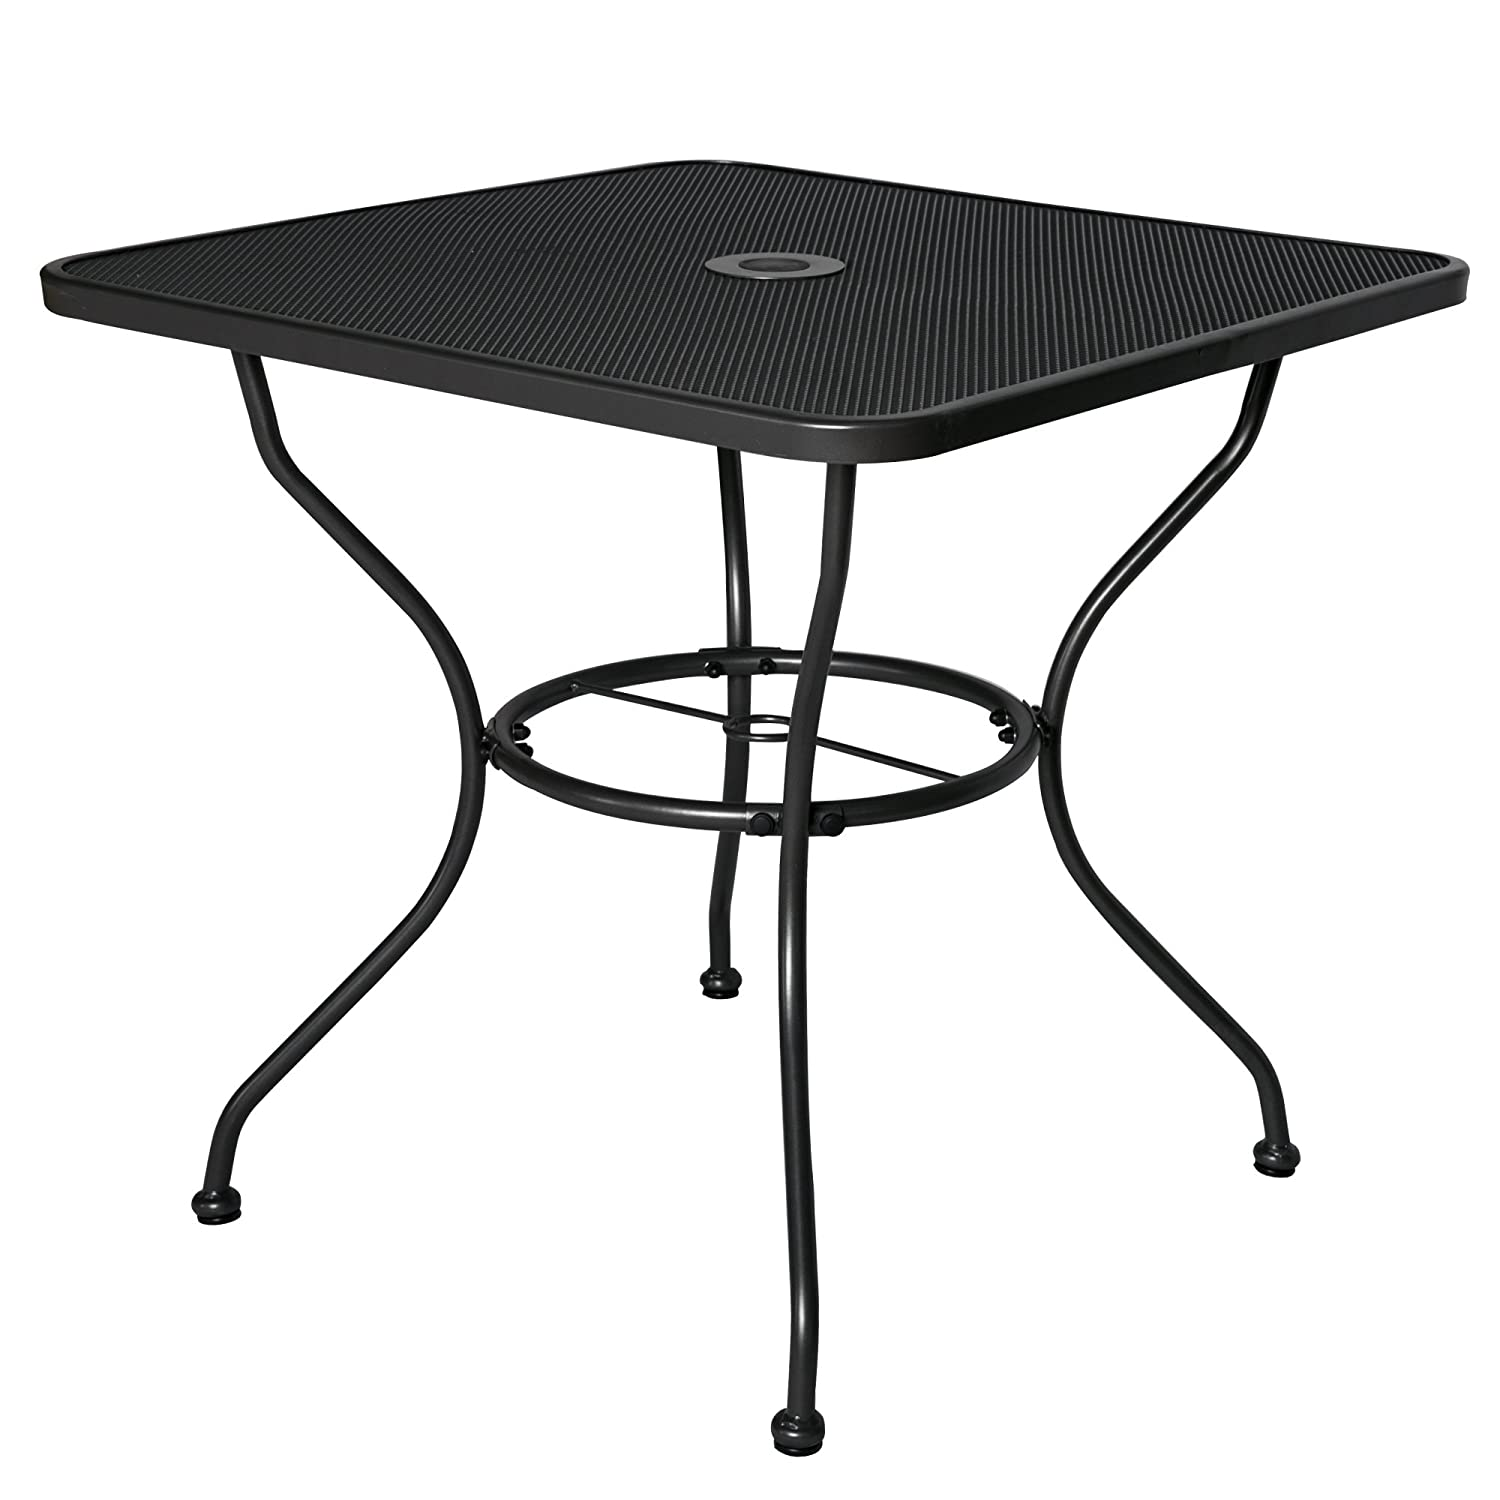 Cloud Mountain 30 x 30 Outoor Dining Table Square Patio Bistro Table Powder-Coated Steel Frame Top Umbrella Stand Deck Outdoor Furniture Garden Table, Ash Black